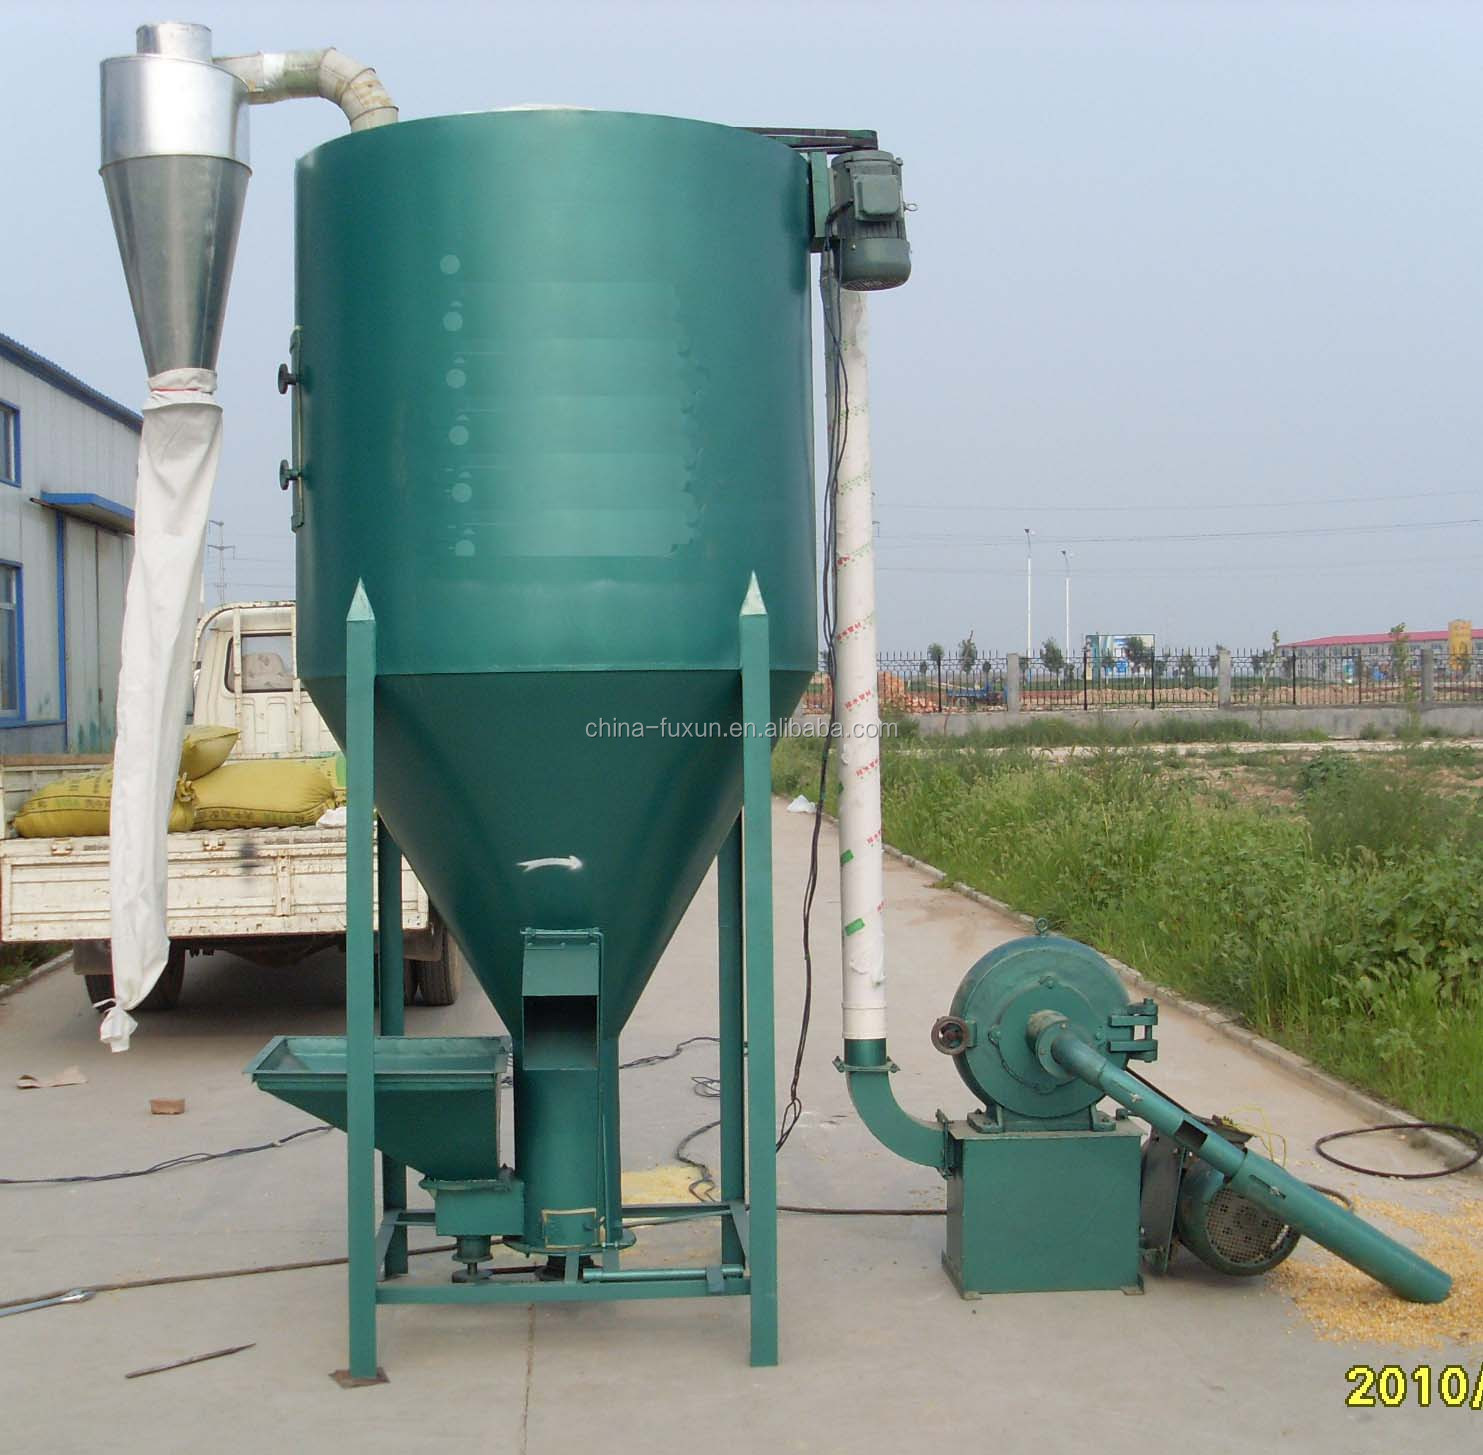 Pig Sheep Chicken Cow Poultry Feed Mill Plant Poultry